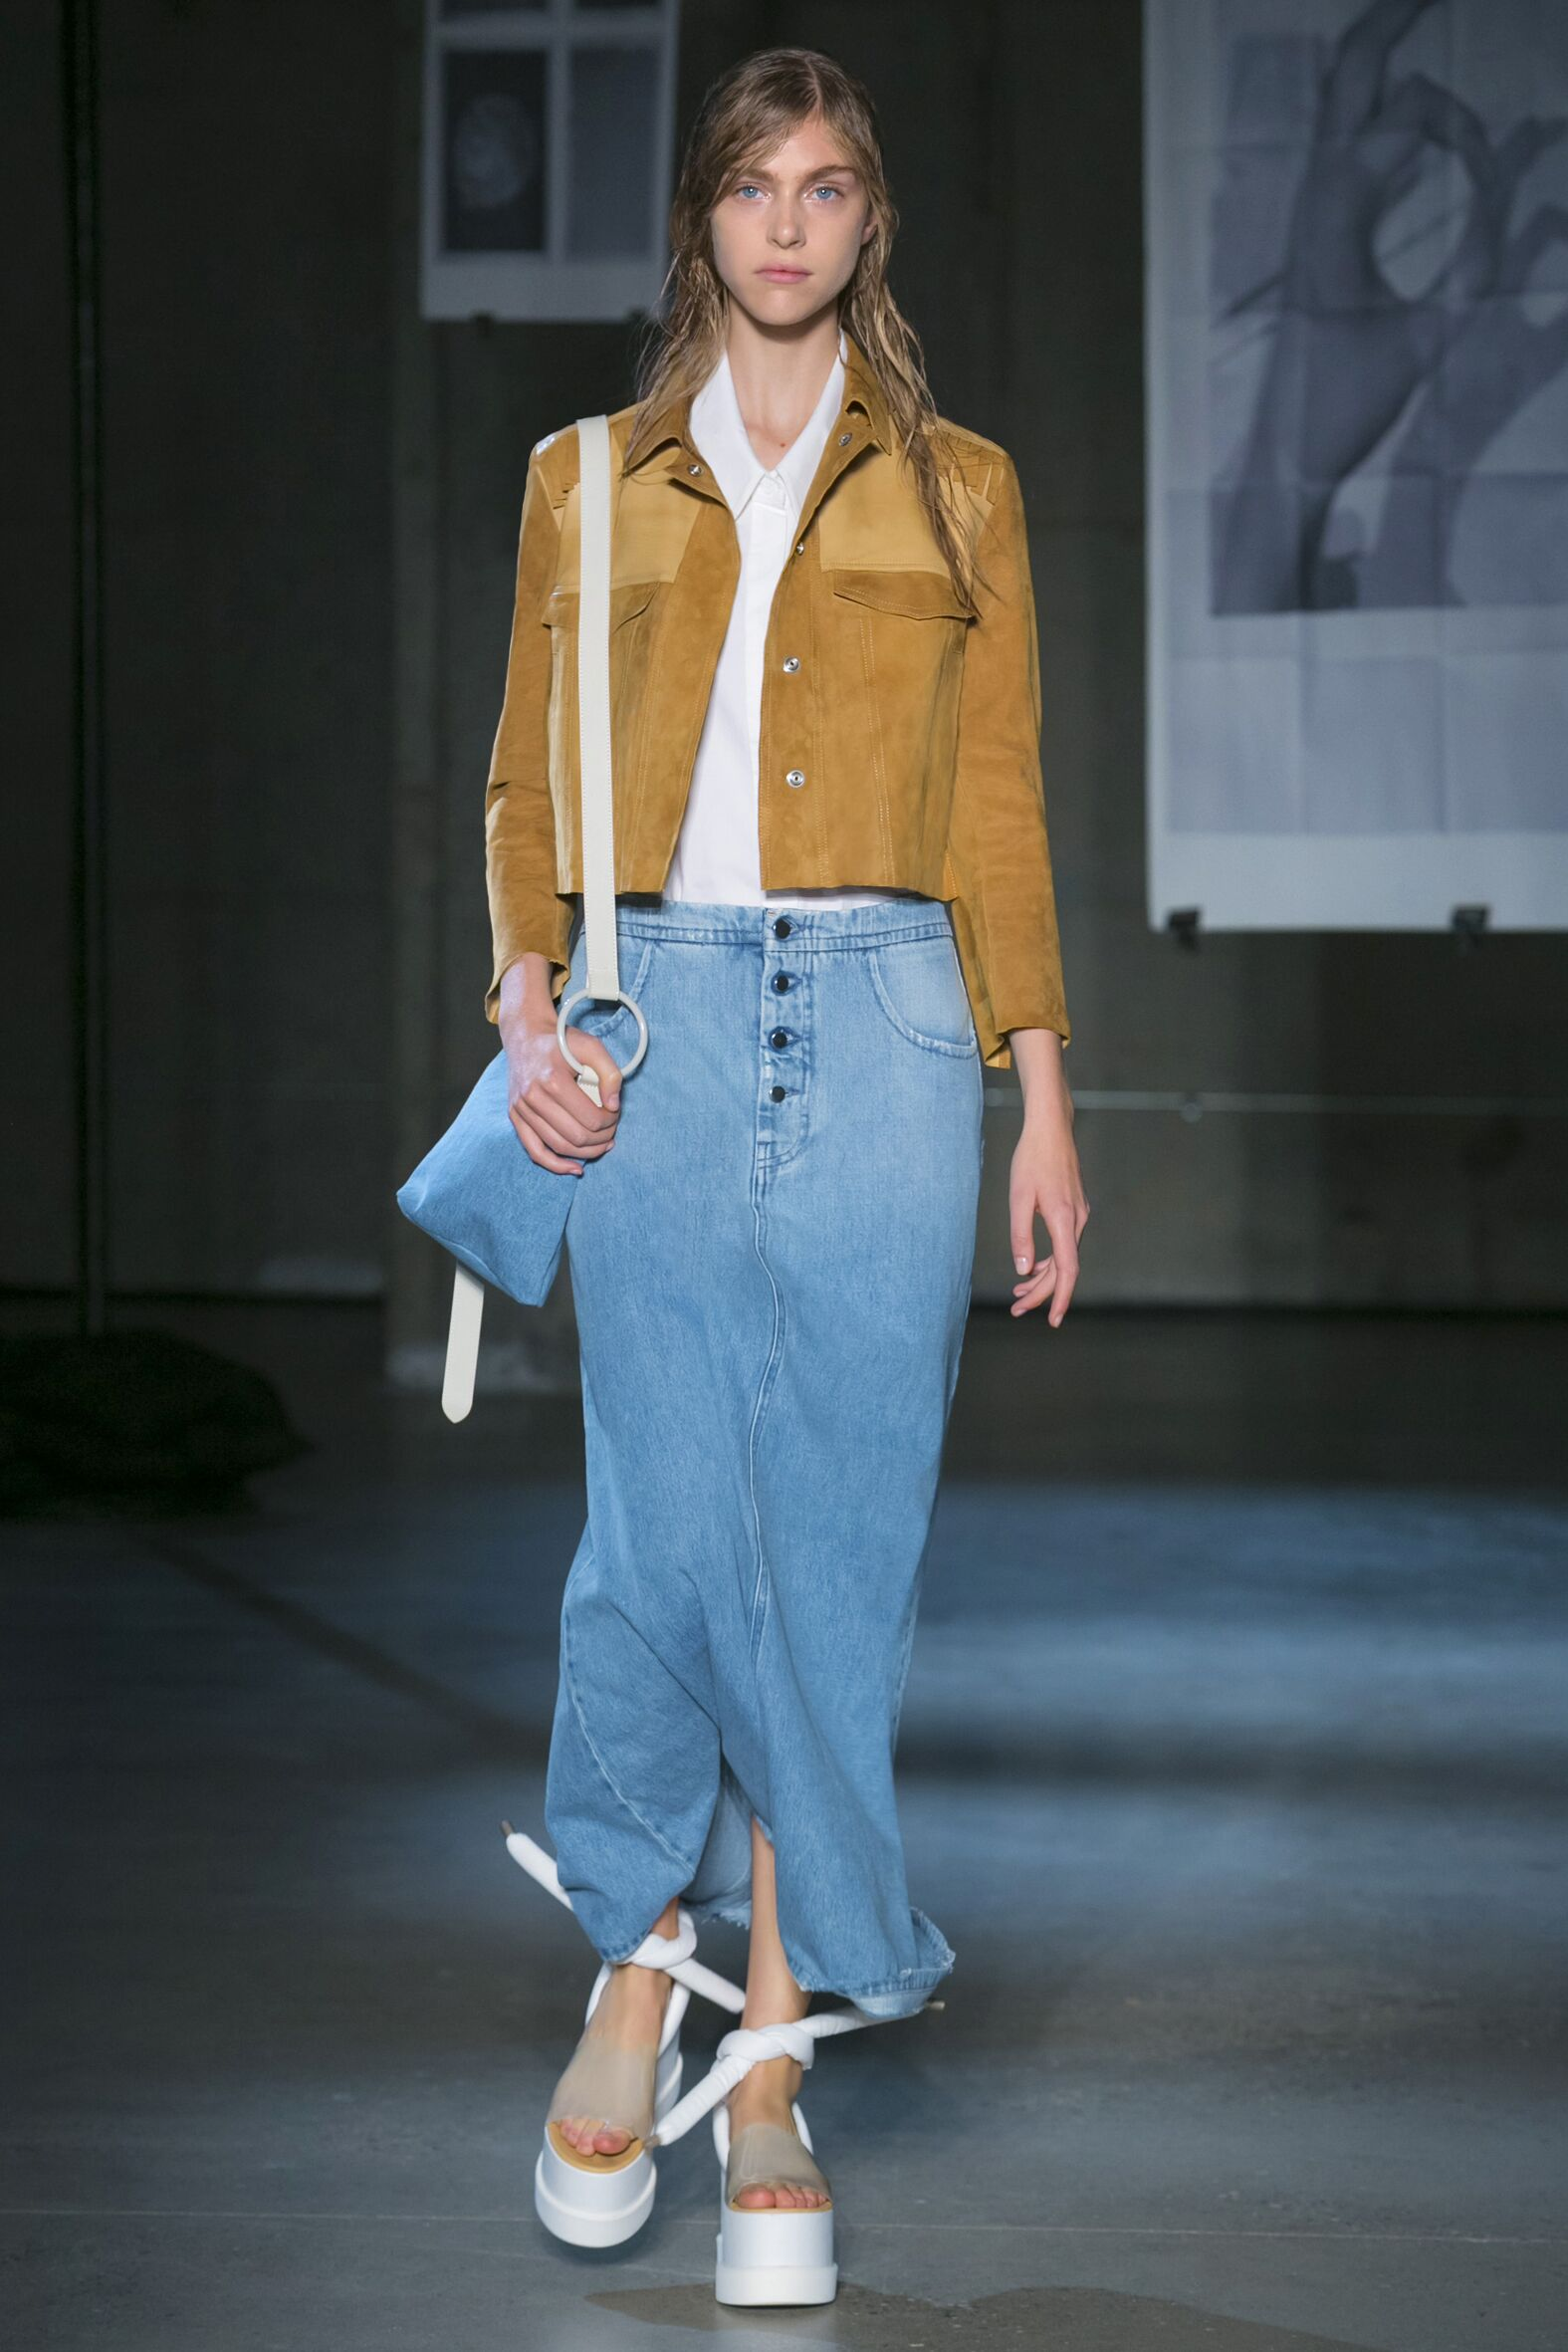 Women 2015 Fashion Trends MM6 Maison Martin Margiela